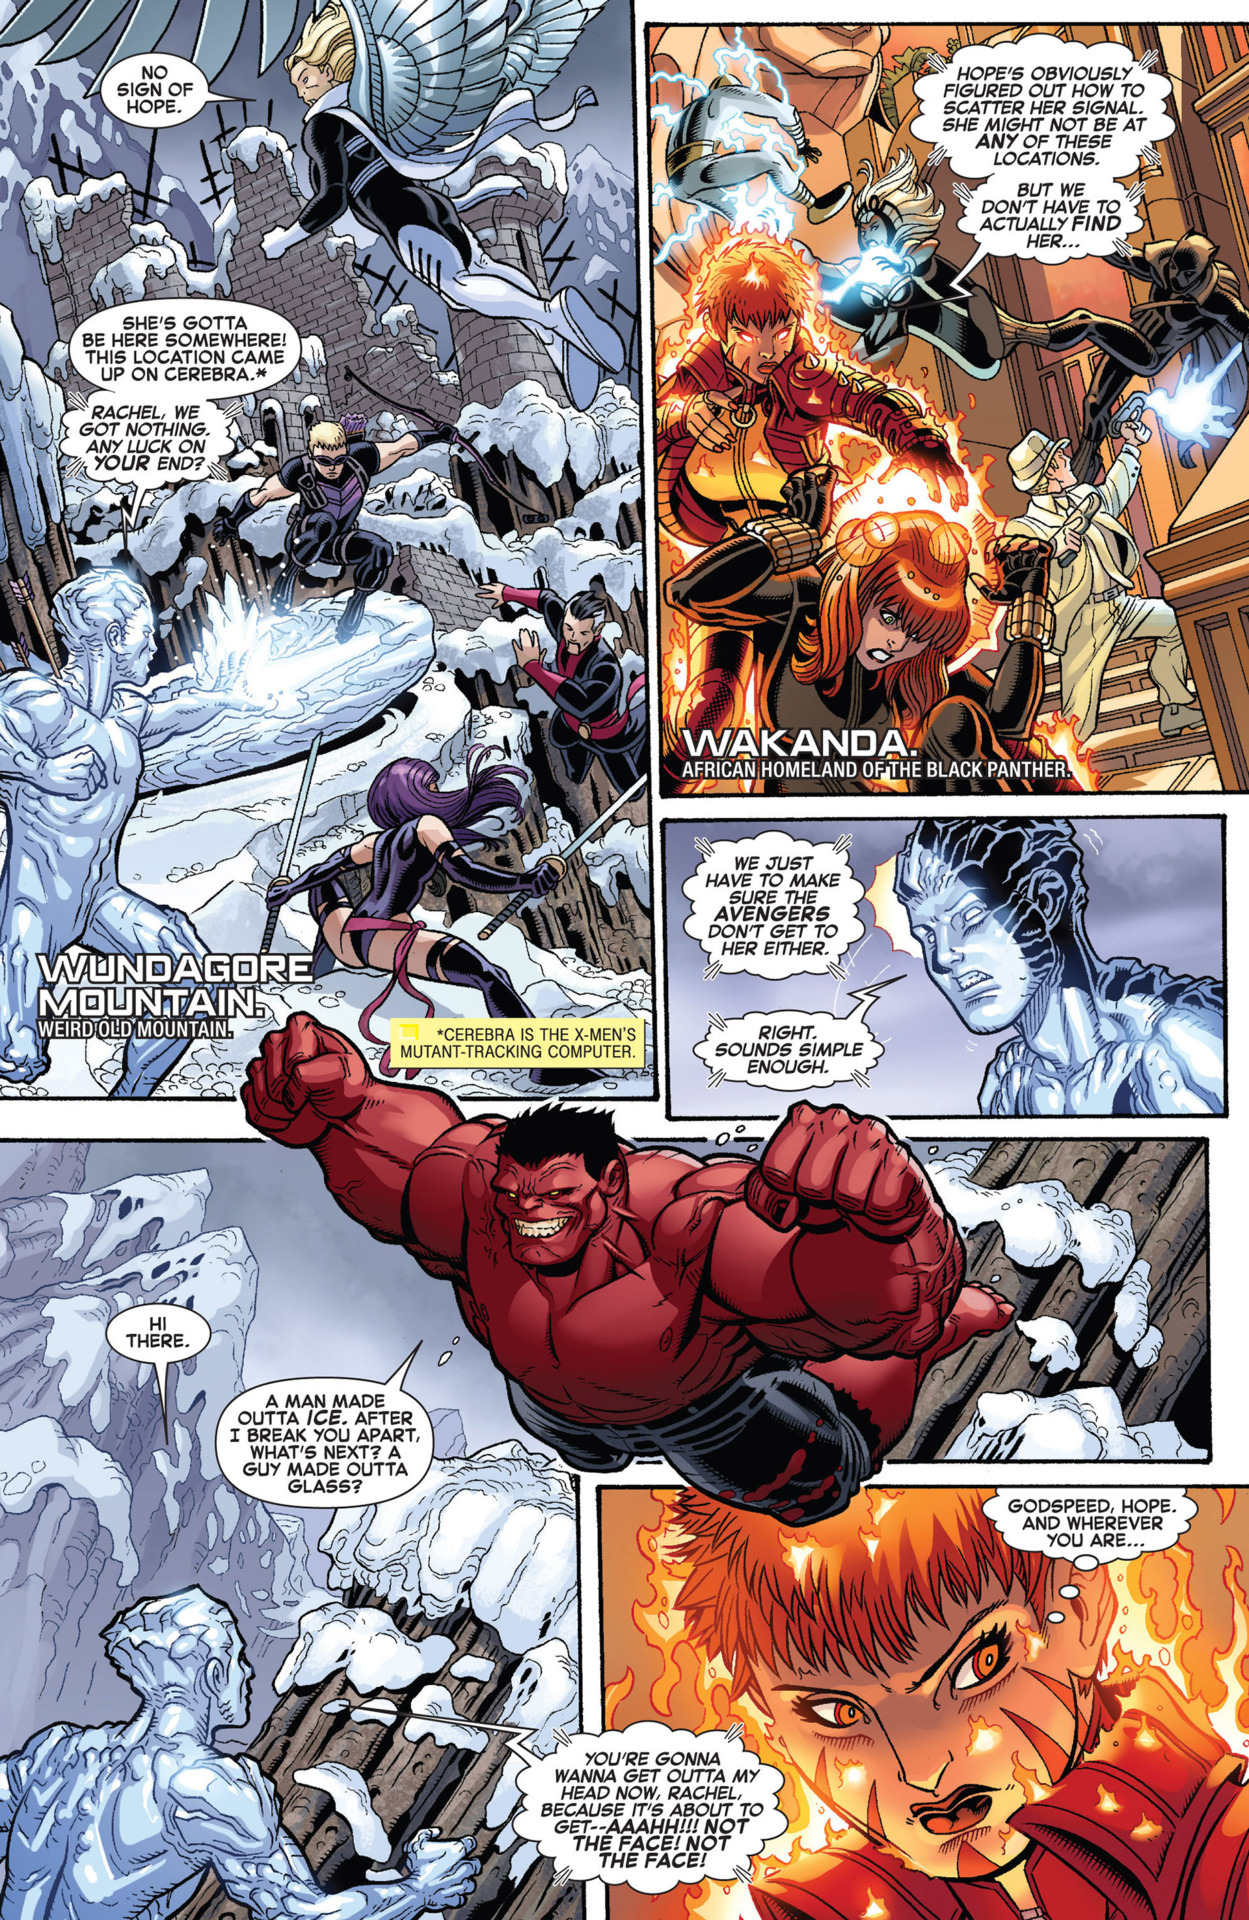 Communicates with Iceman on Wundagore mountain from Wakanda - Wolverine and the X-Men #10